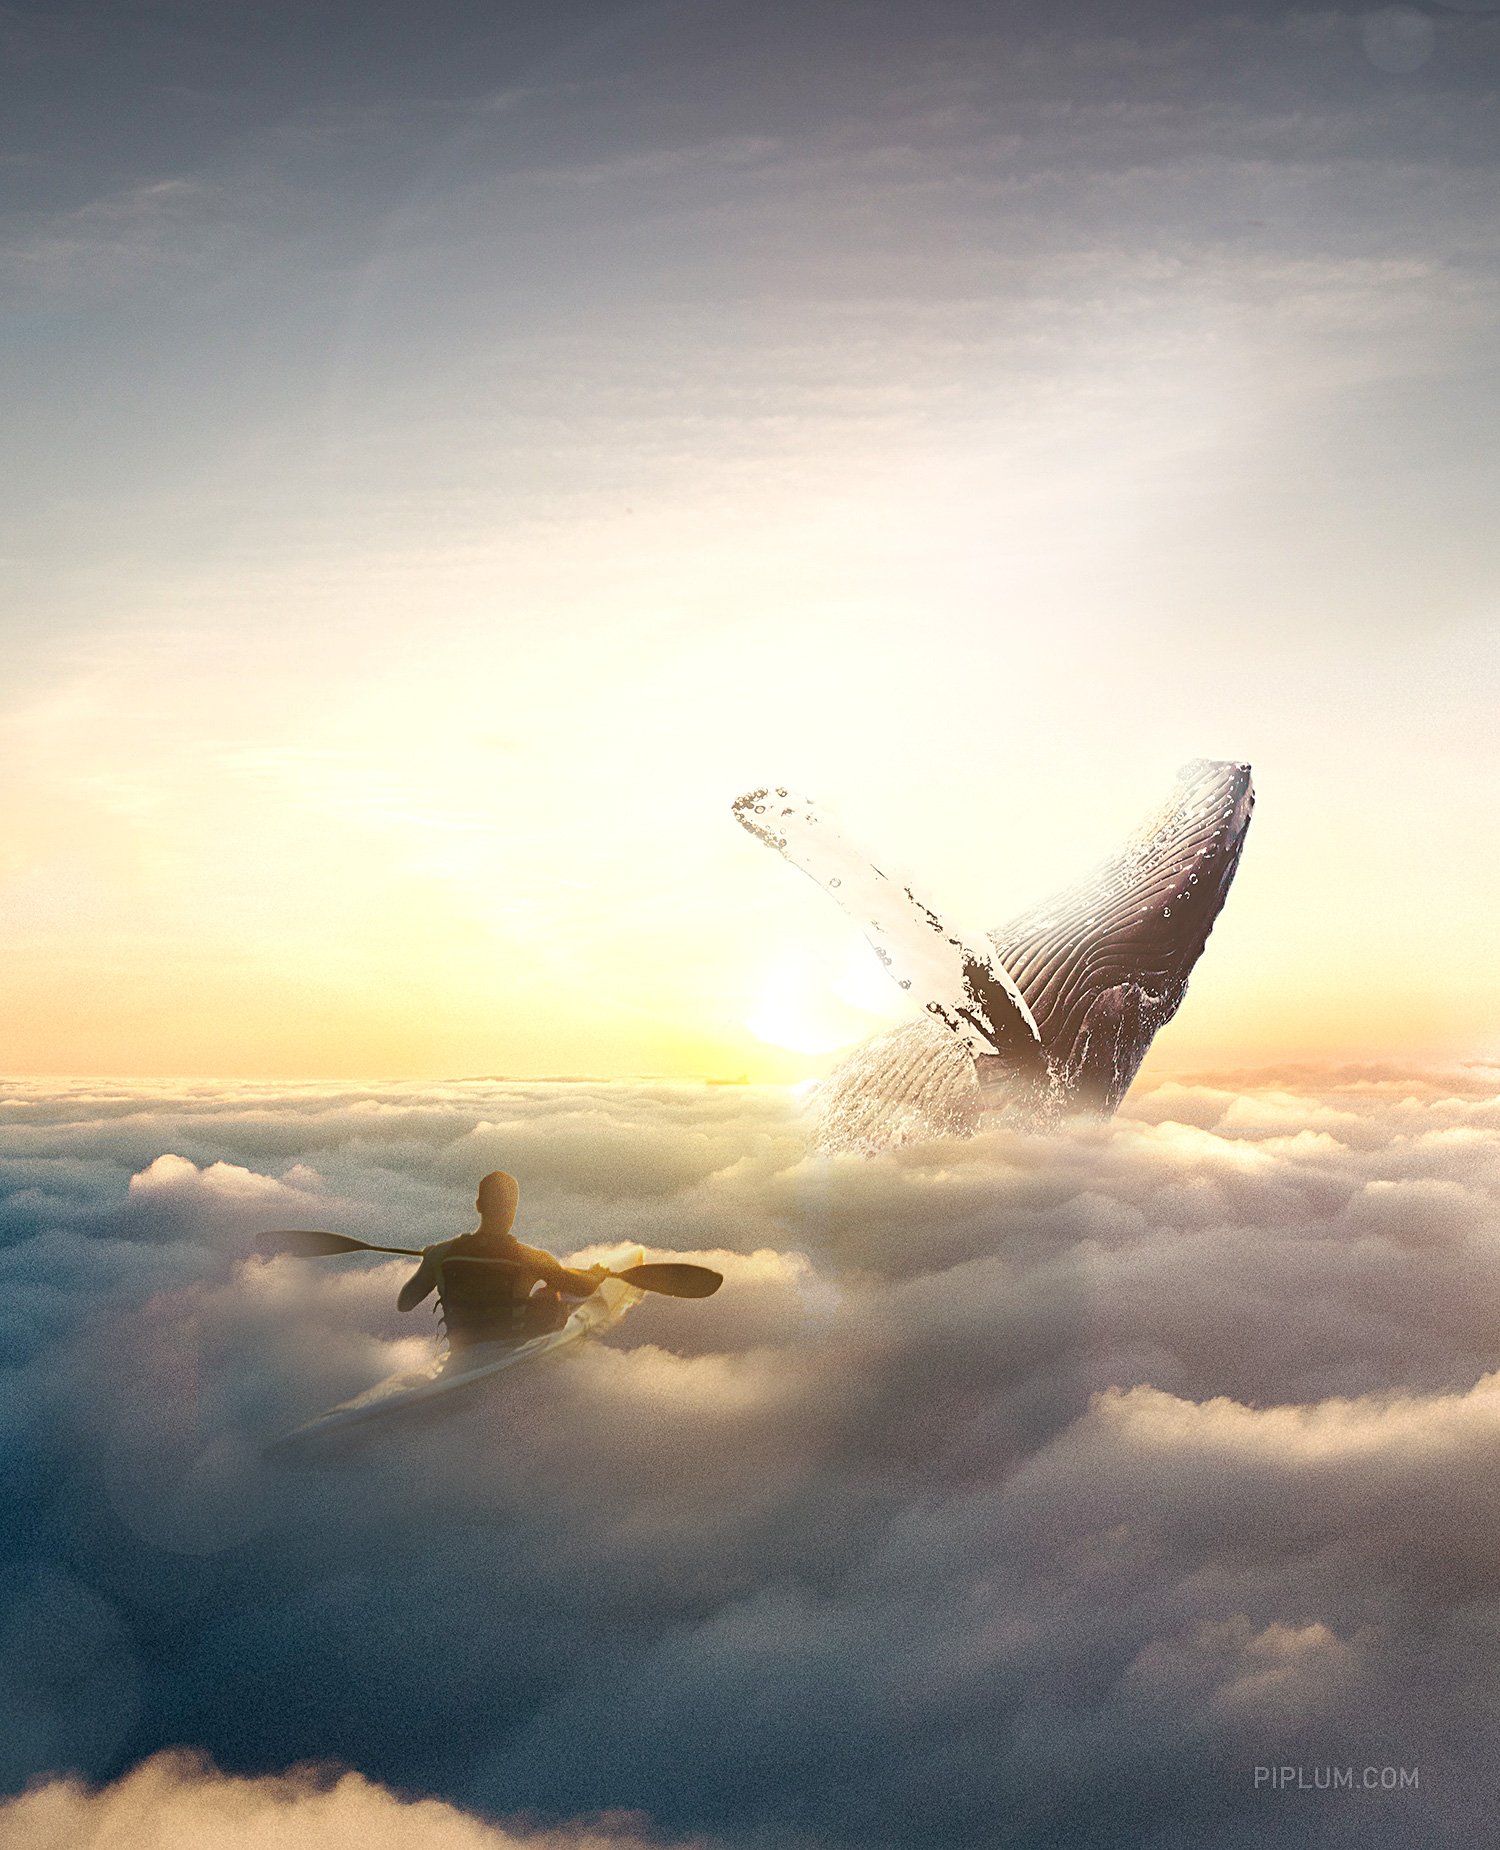 surreal-world.-Whale-in-the-sky. life quotes